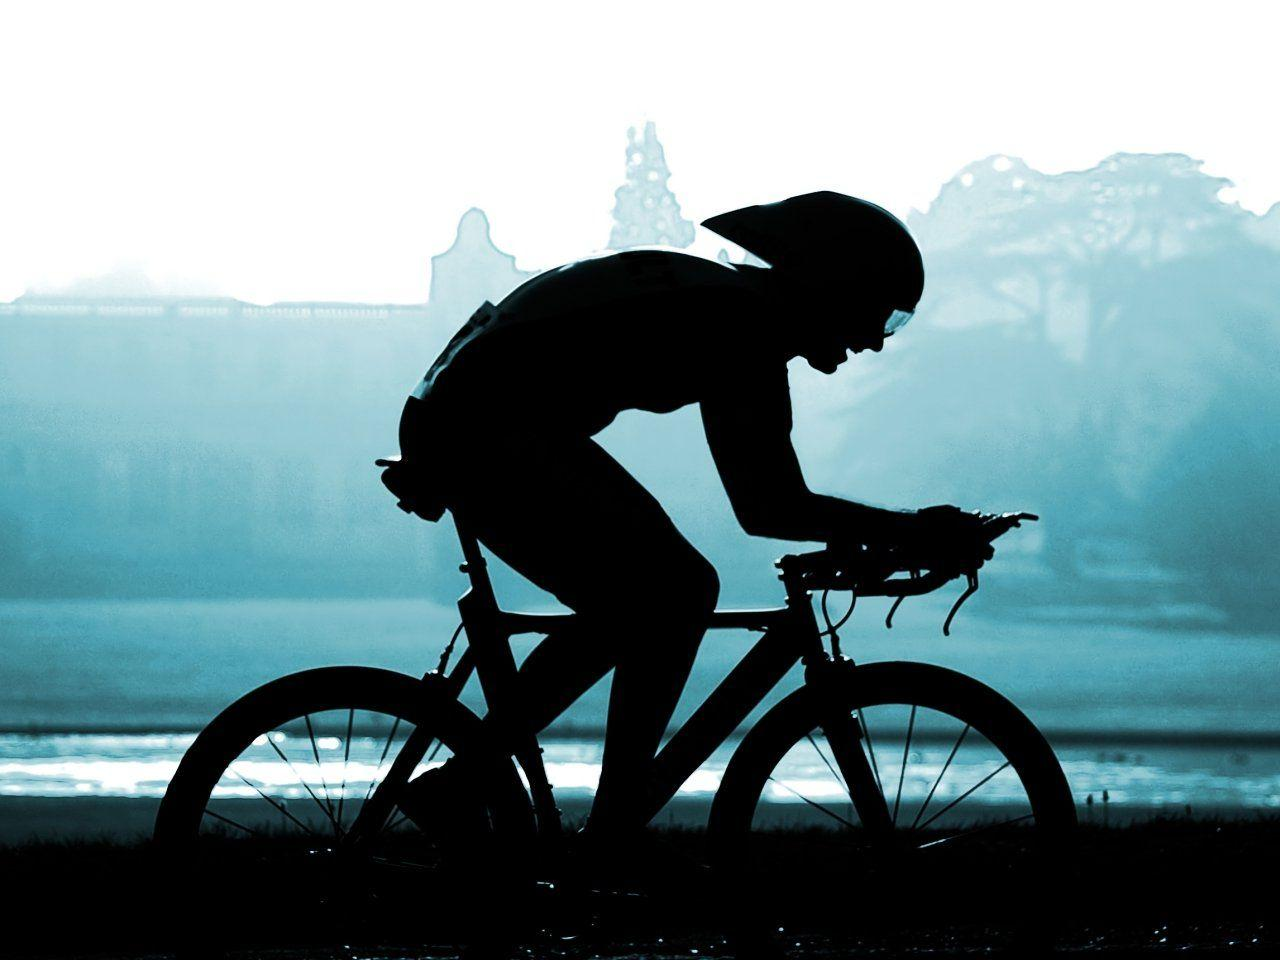 Image For > Ironman Triathlon Wallpapers